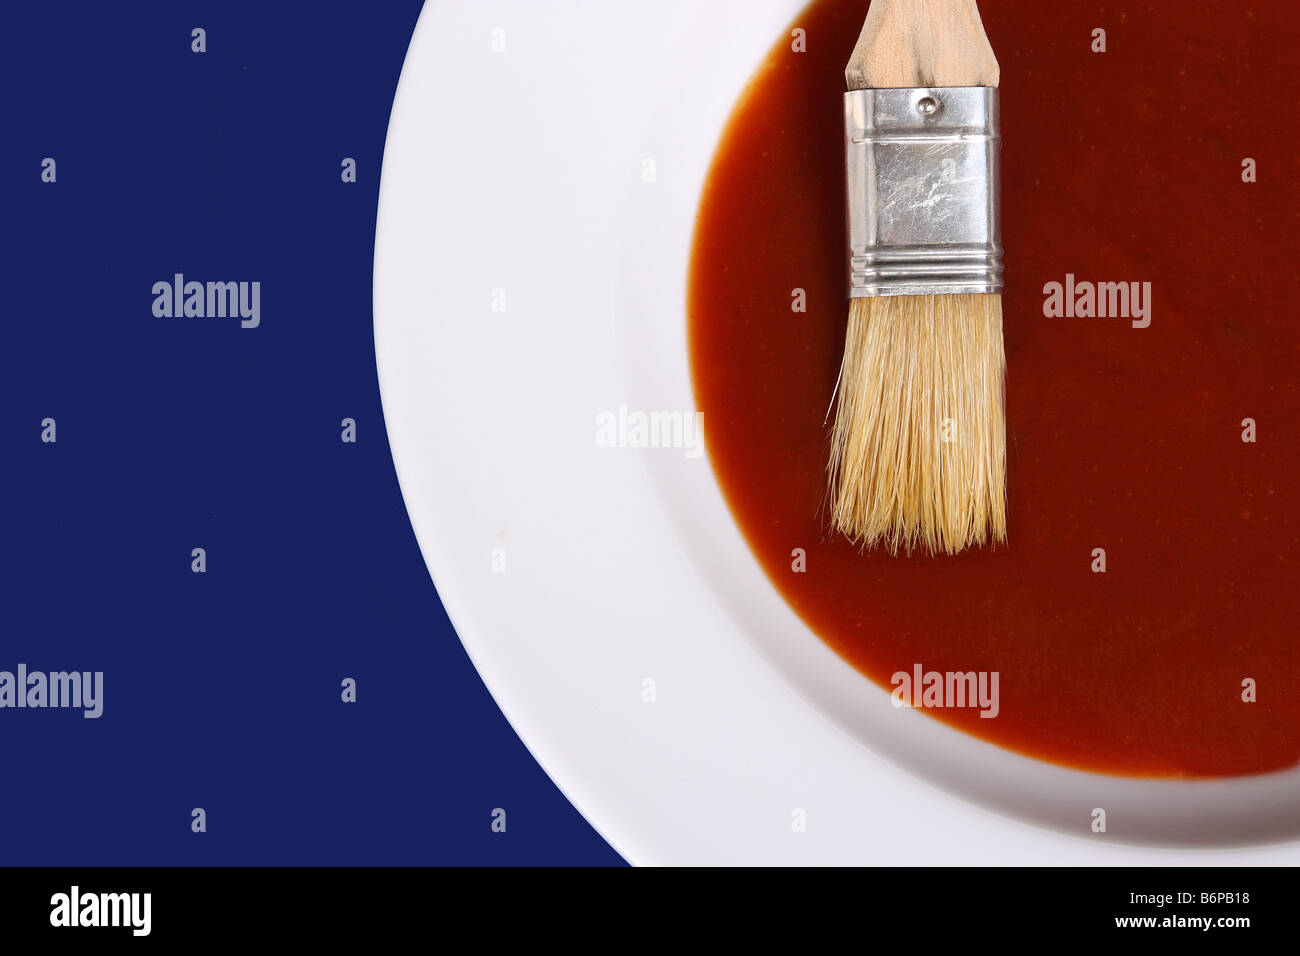 A White Bowl of Bar-B-Que Sauce on a Blue Background - Stock Image